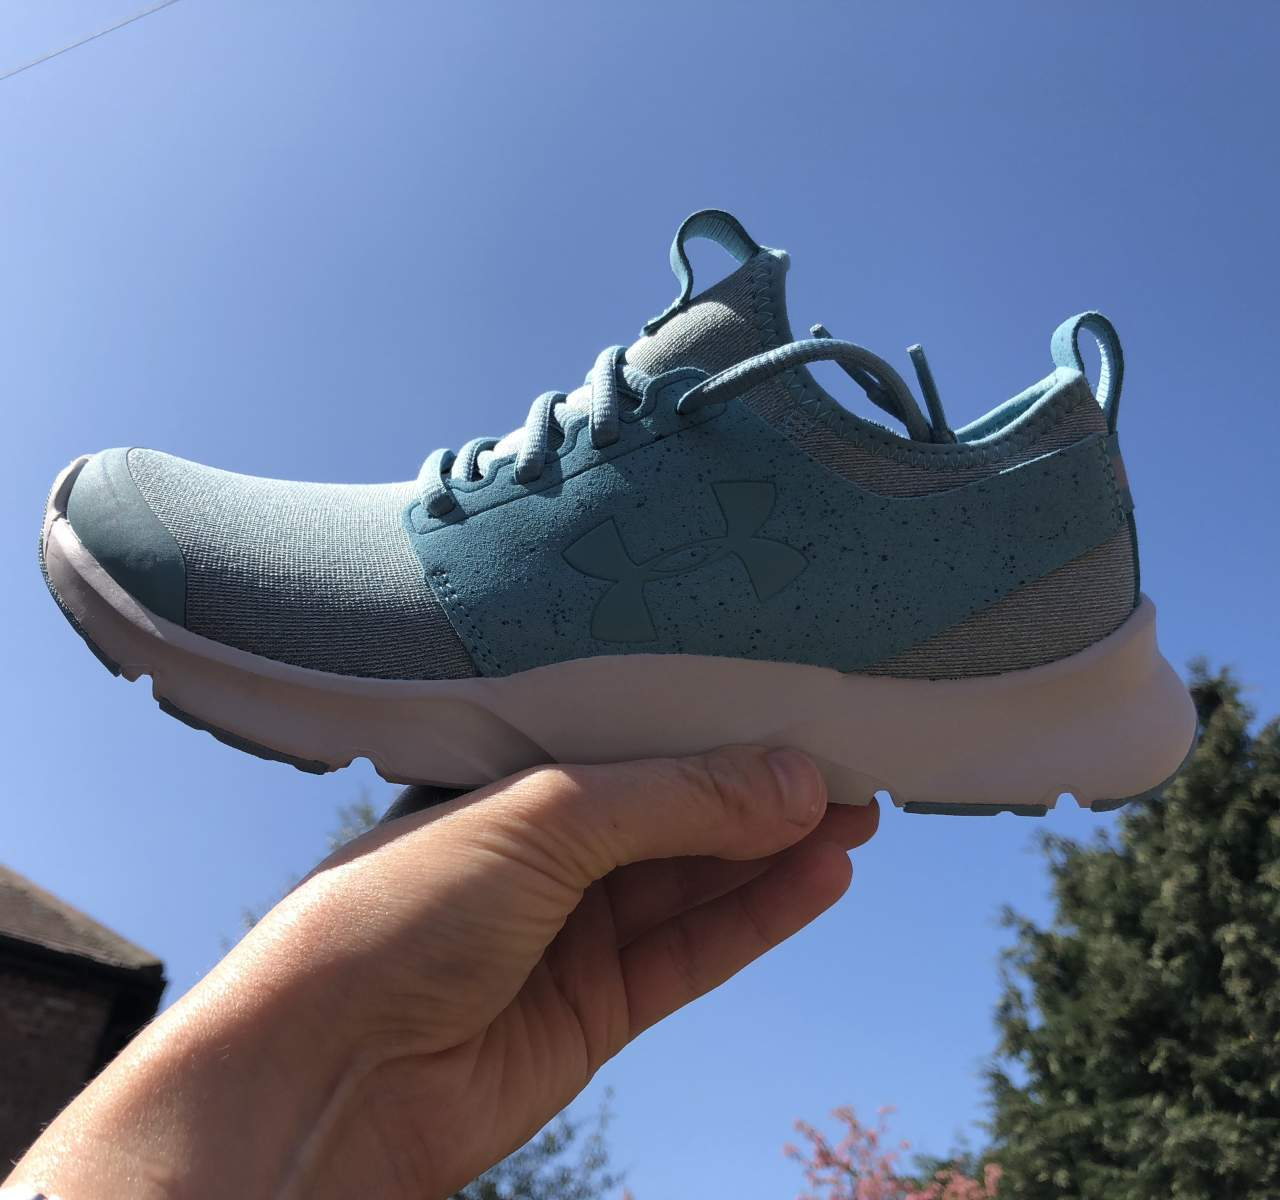 Under Armour trainer giveaway!